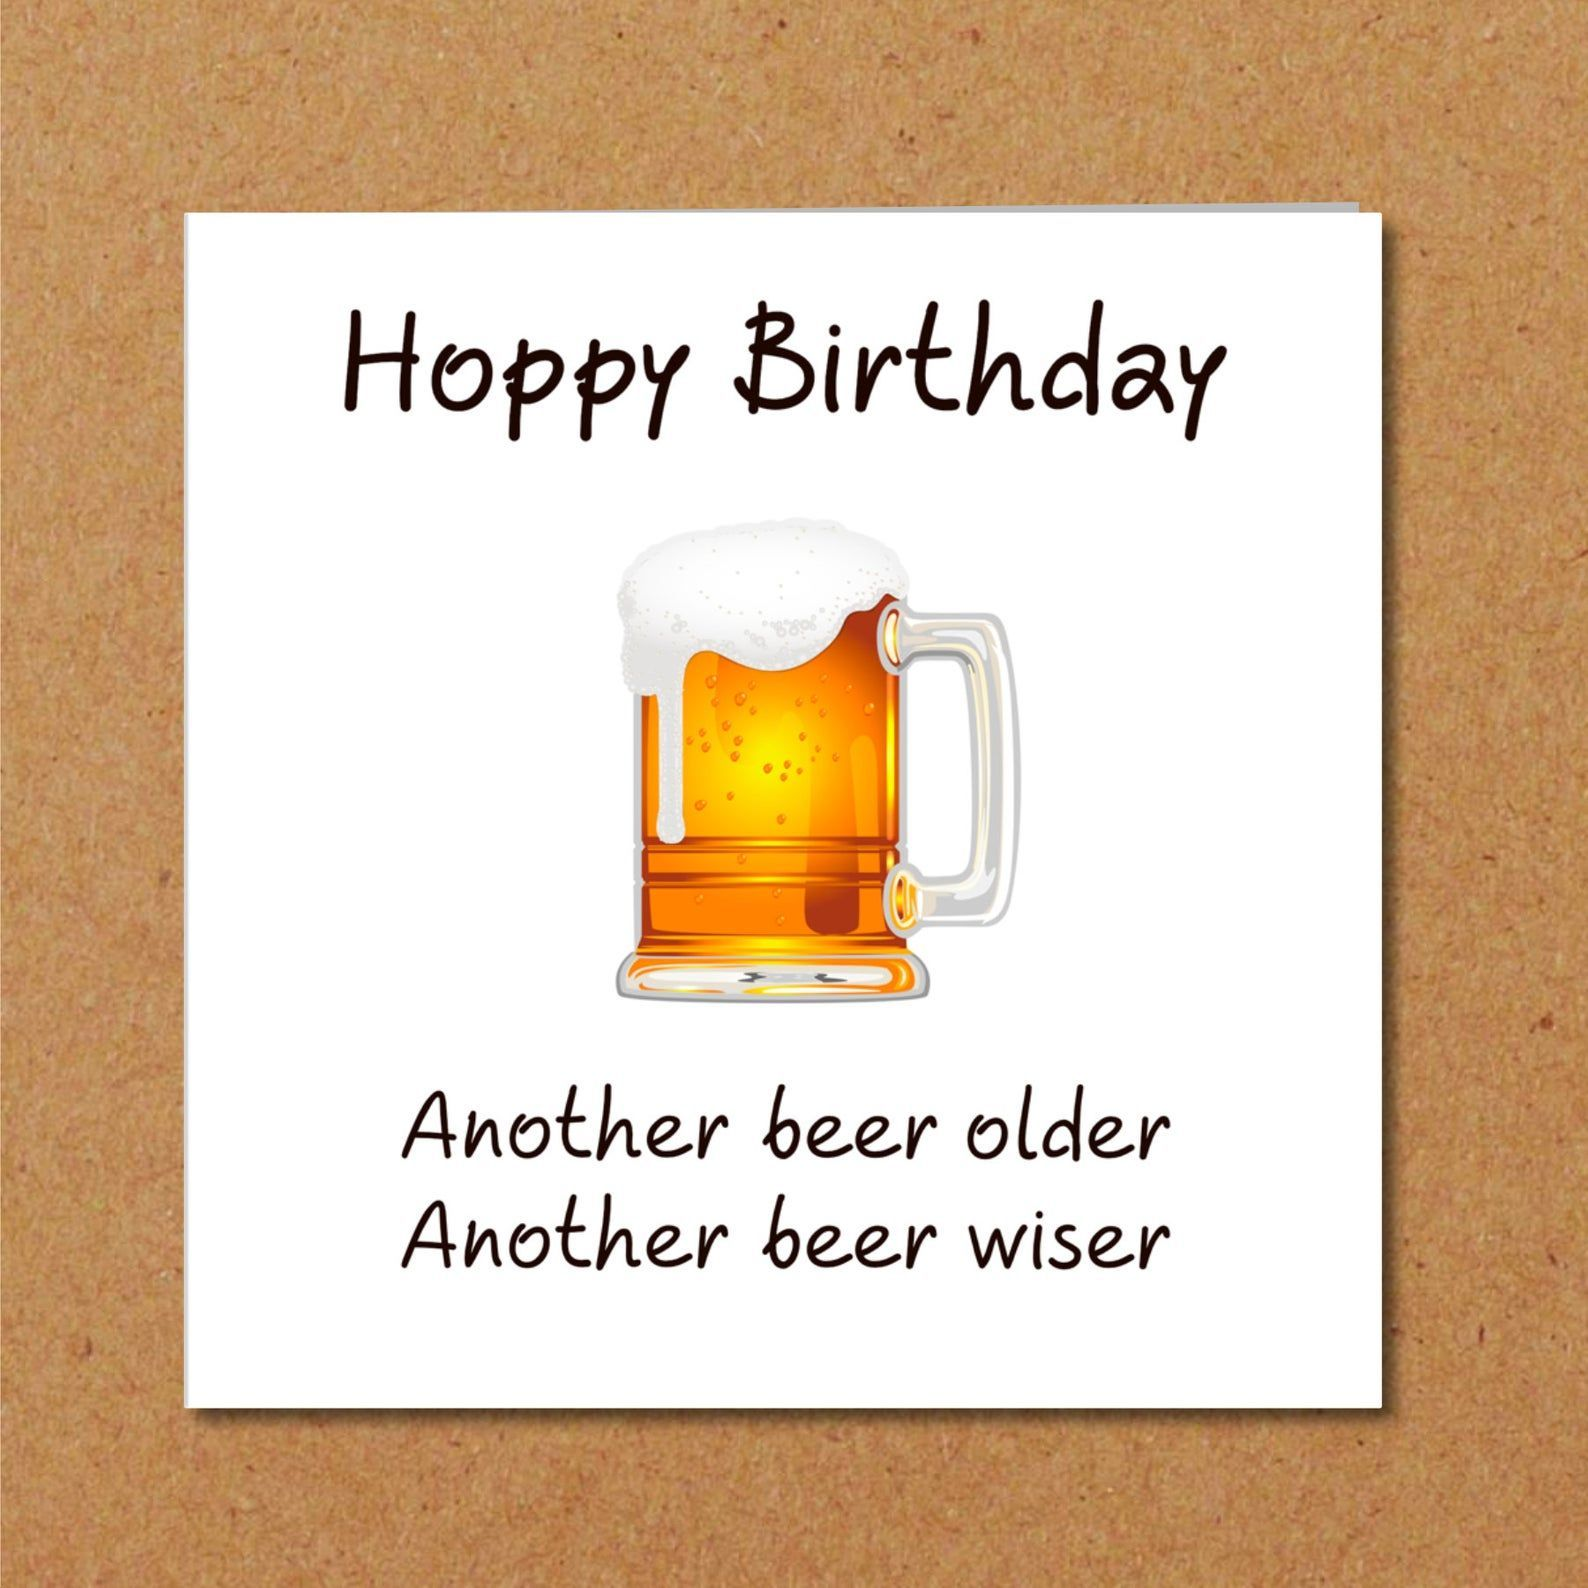 Funny BEER Birthday Card for Dad, Son, Male, Friend - Humorous Pun Quote - another year older ,  #another #beer #birthday #Card #dad #friend #funny #humorous #Male #older #Pun #quote #Son #Year